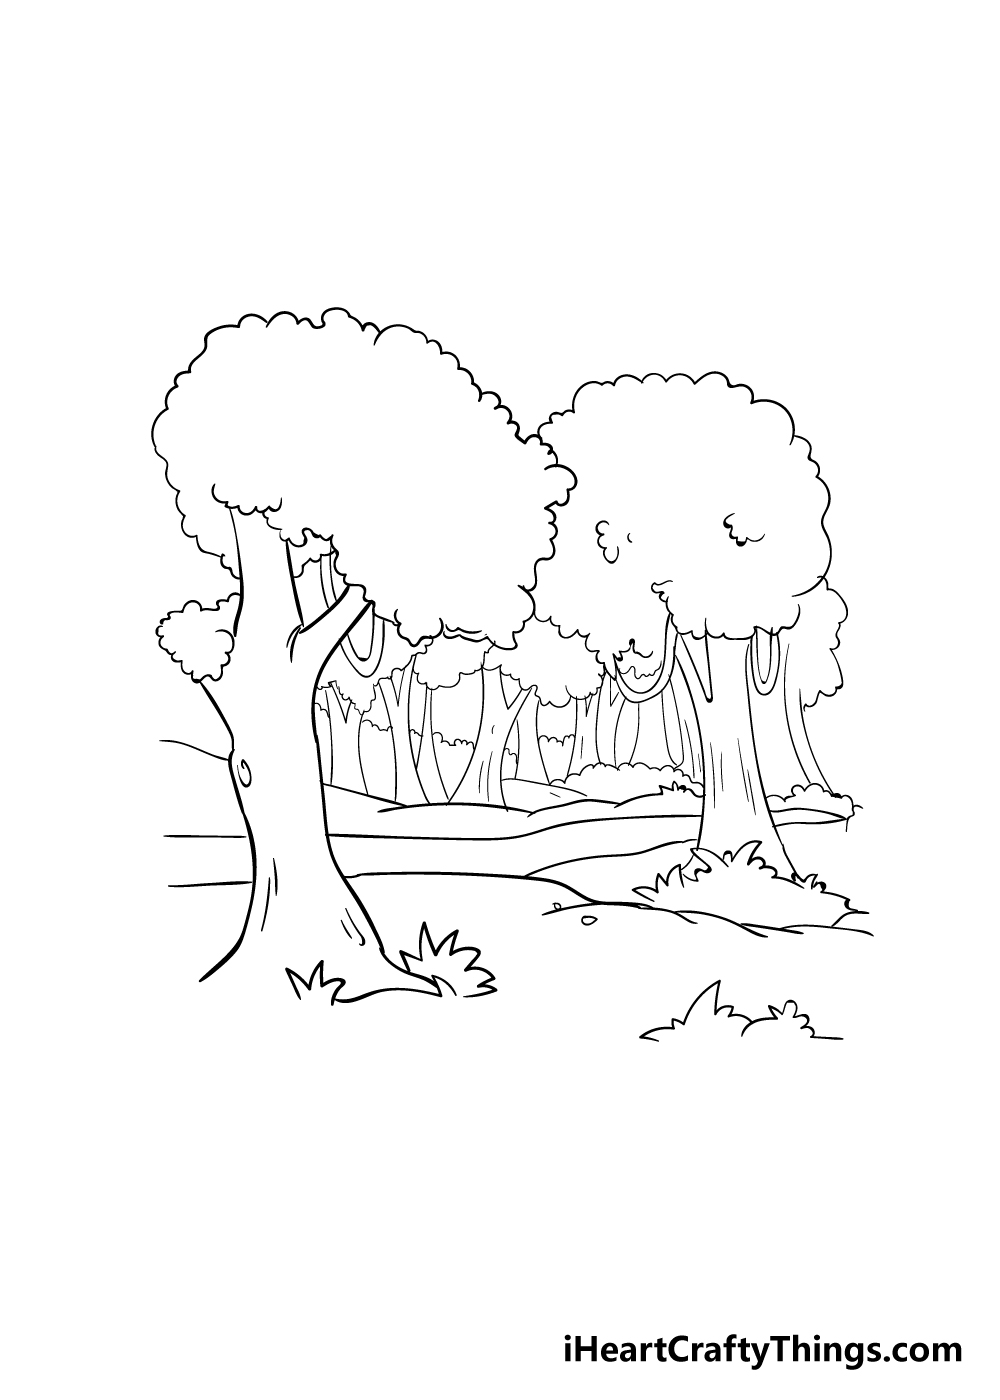 forest drawing step 5